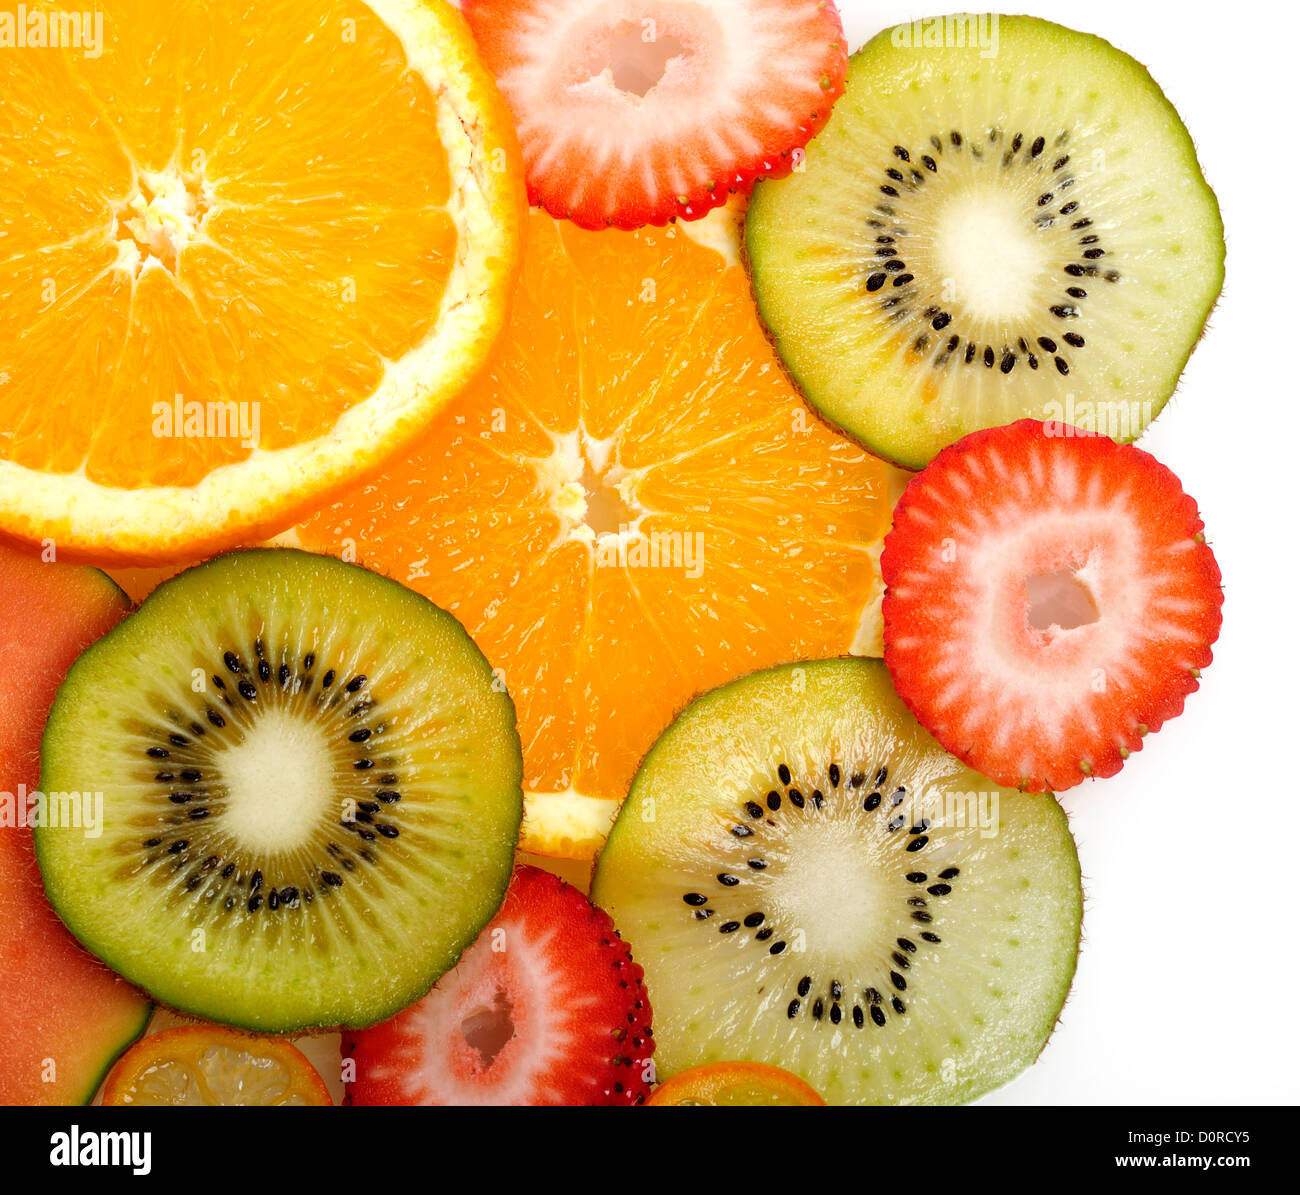 Slices Of Tropical Fruits,Close Up - Stock Image